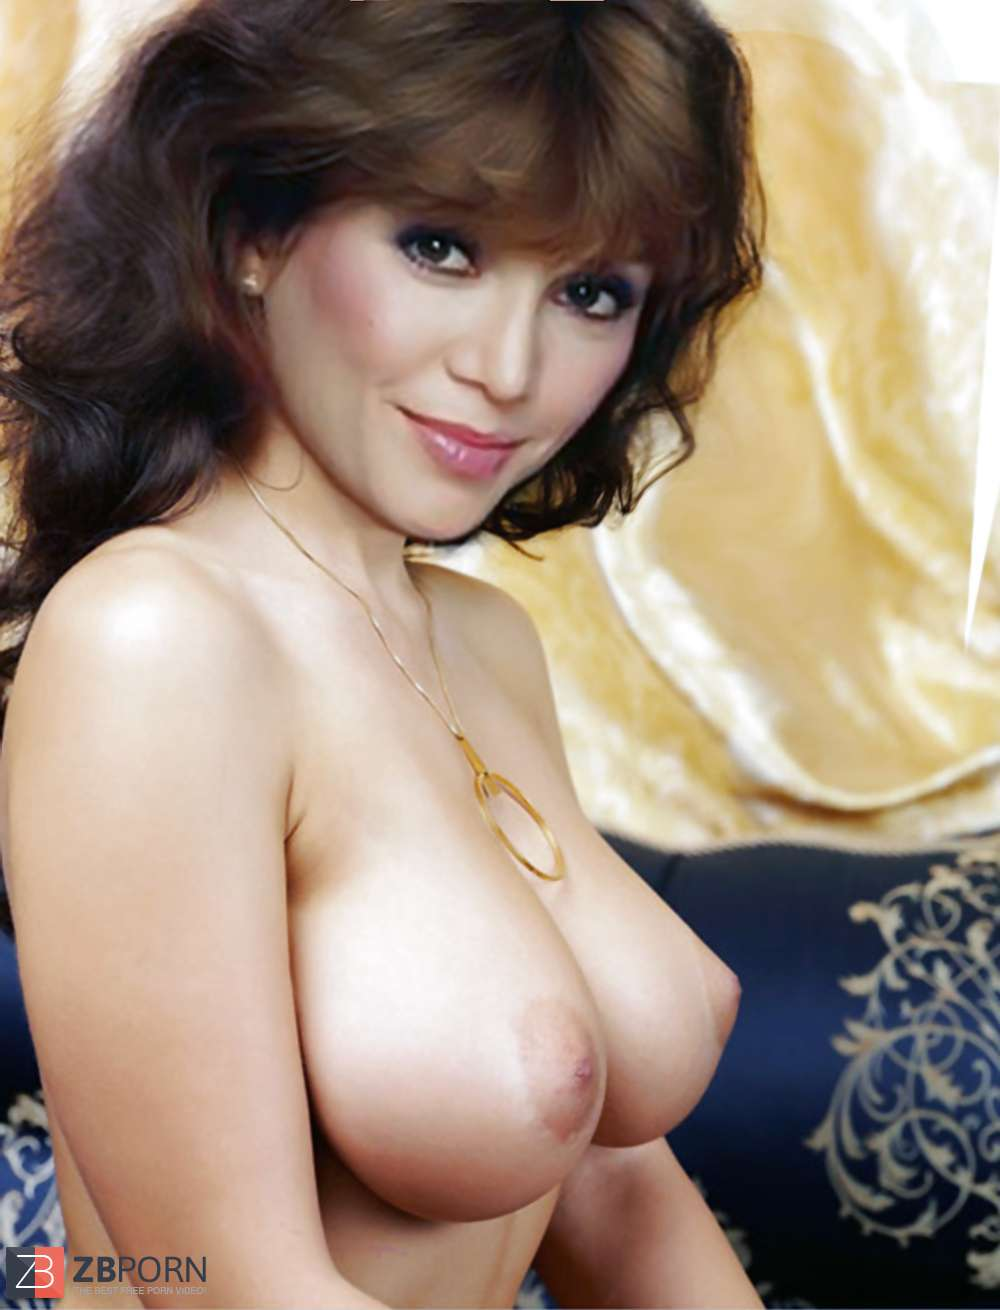 Victoria principal hairy pussy remarkable, rather